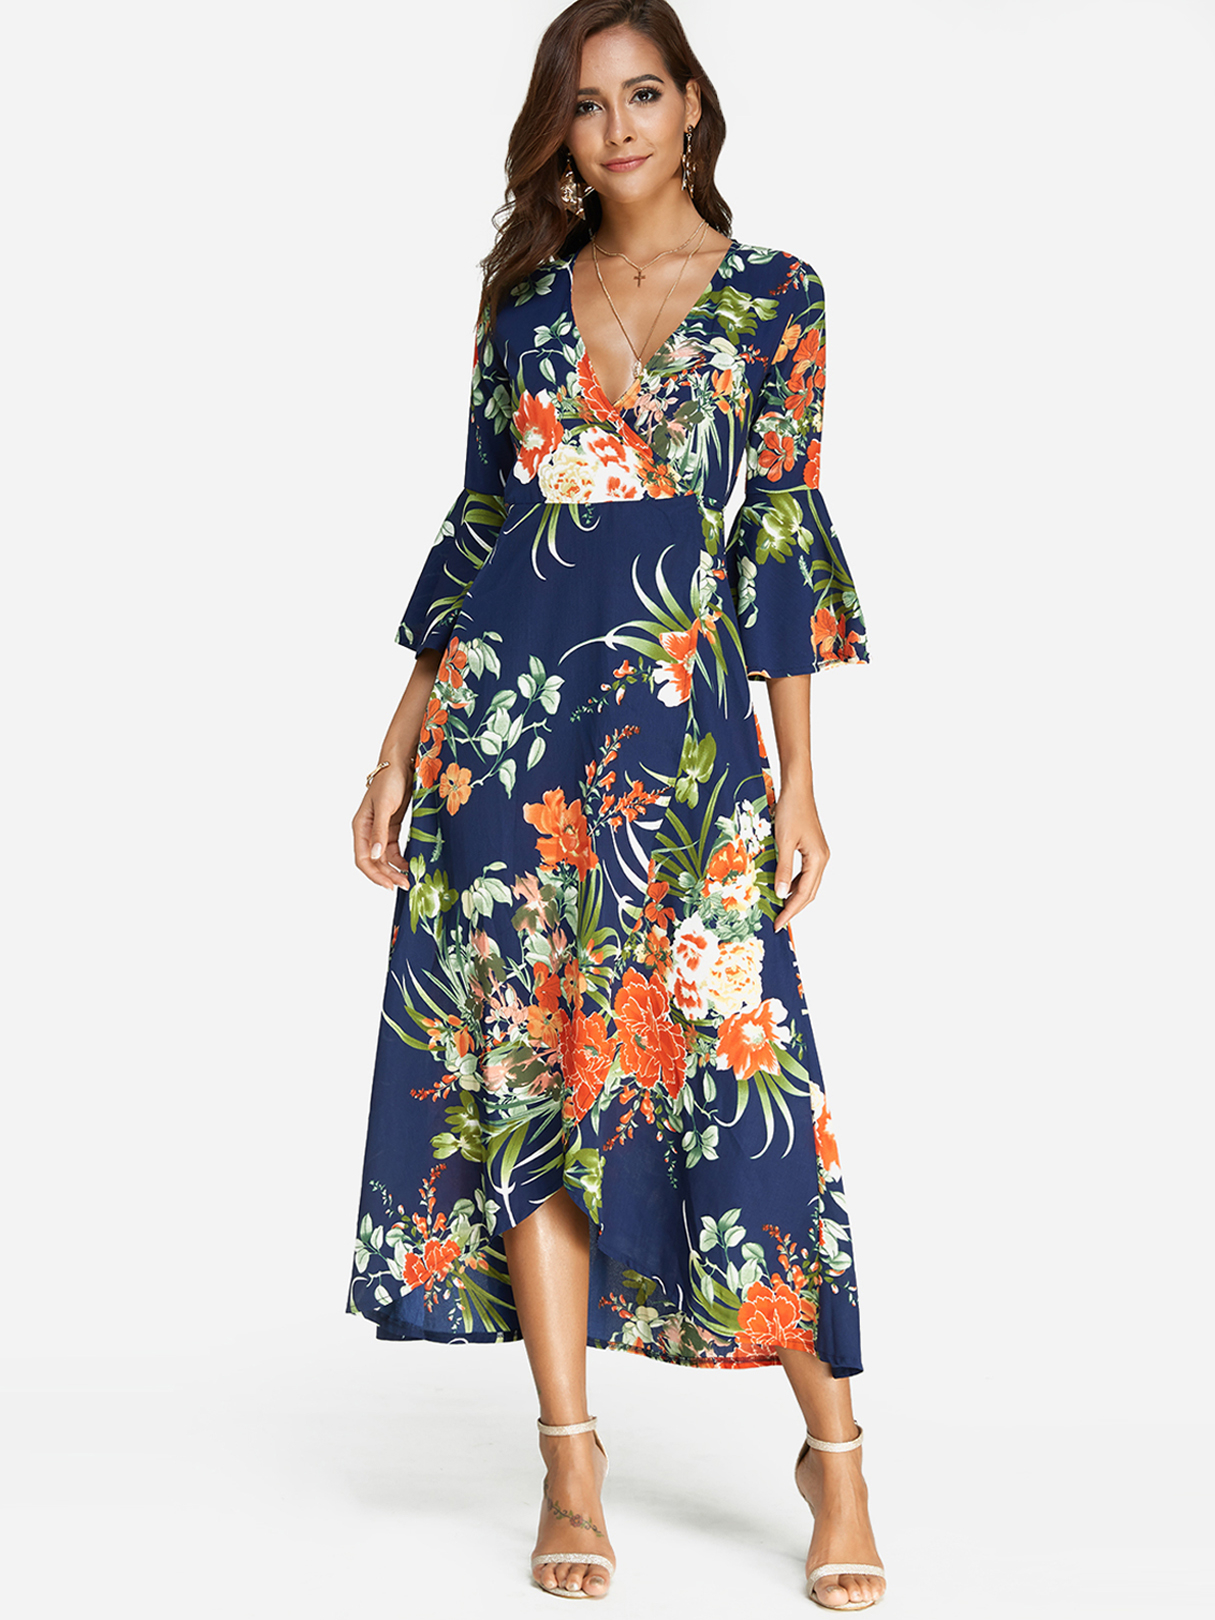 Blue Crossed Front Random Floral Print V-neck Flared Sleeves Dress